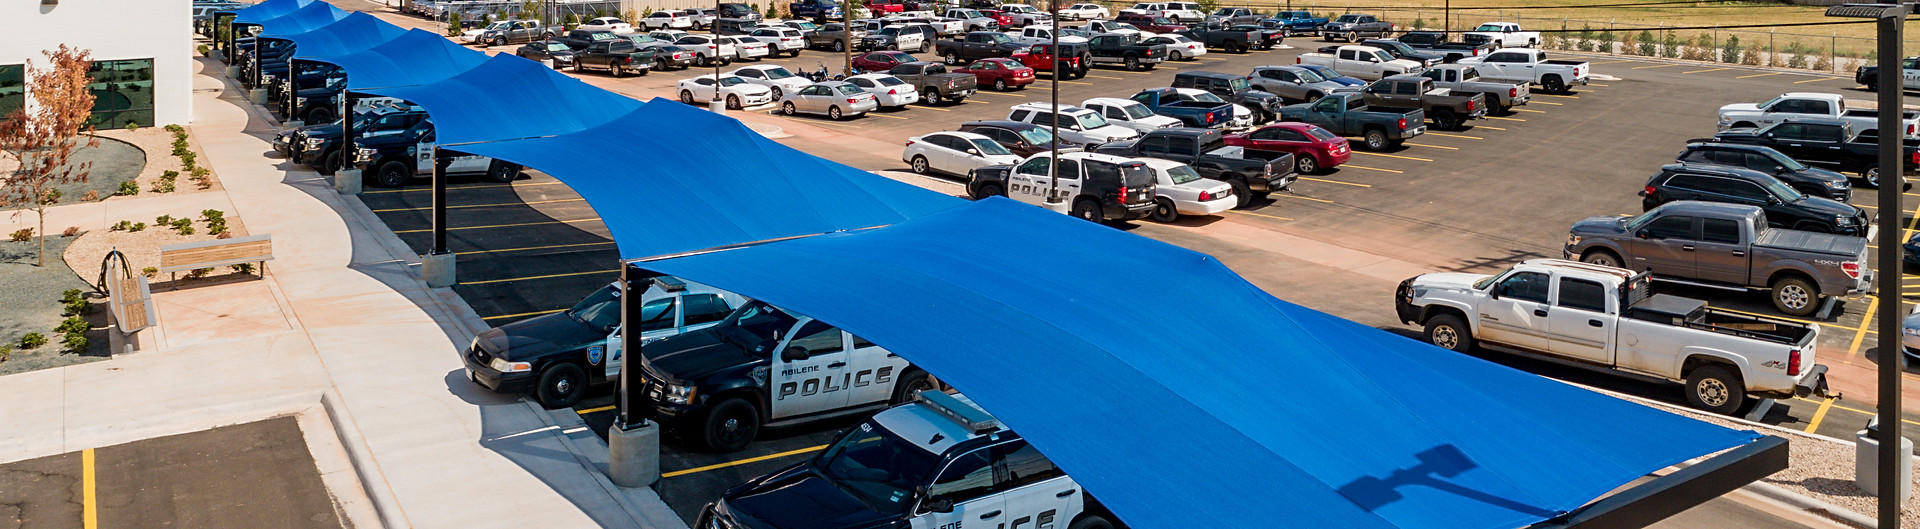 Parking Shade Structures, Abilene, TX